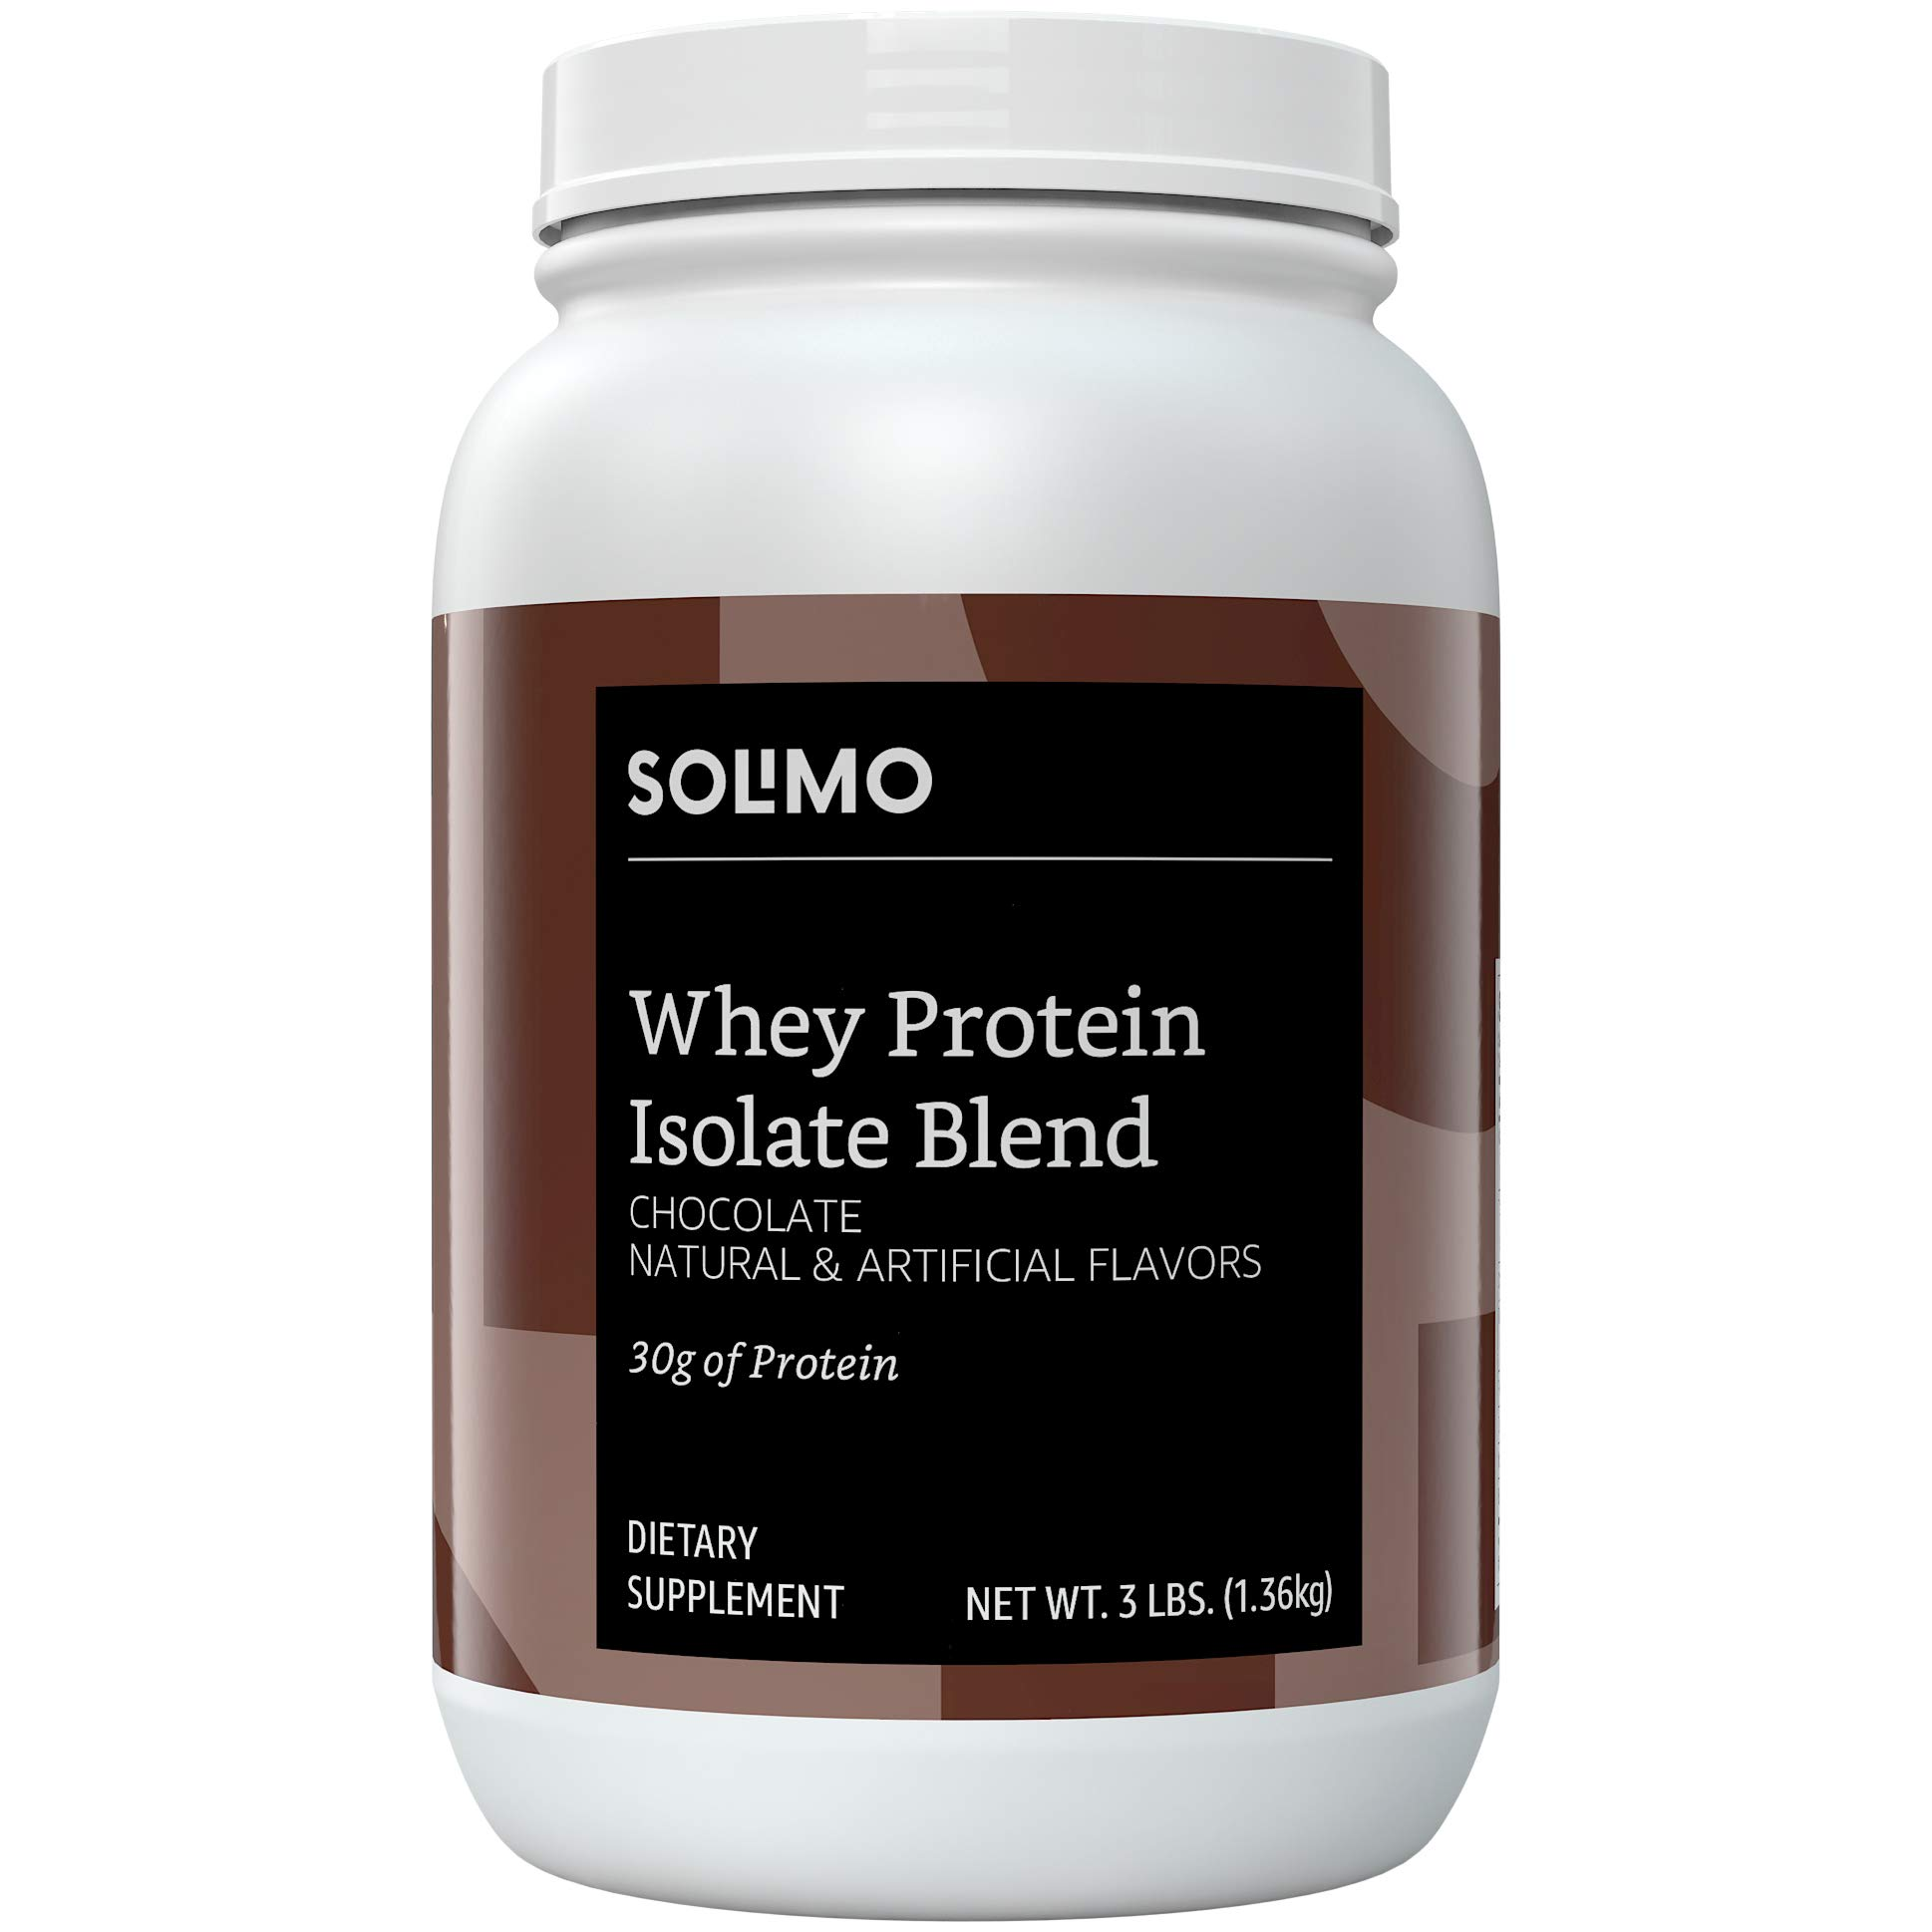 Amazon Brand - Solimo Whey Protein Isolate Blend, Chocolate, 3 Pound (35 Servings)